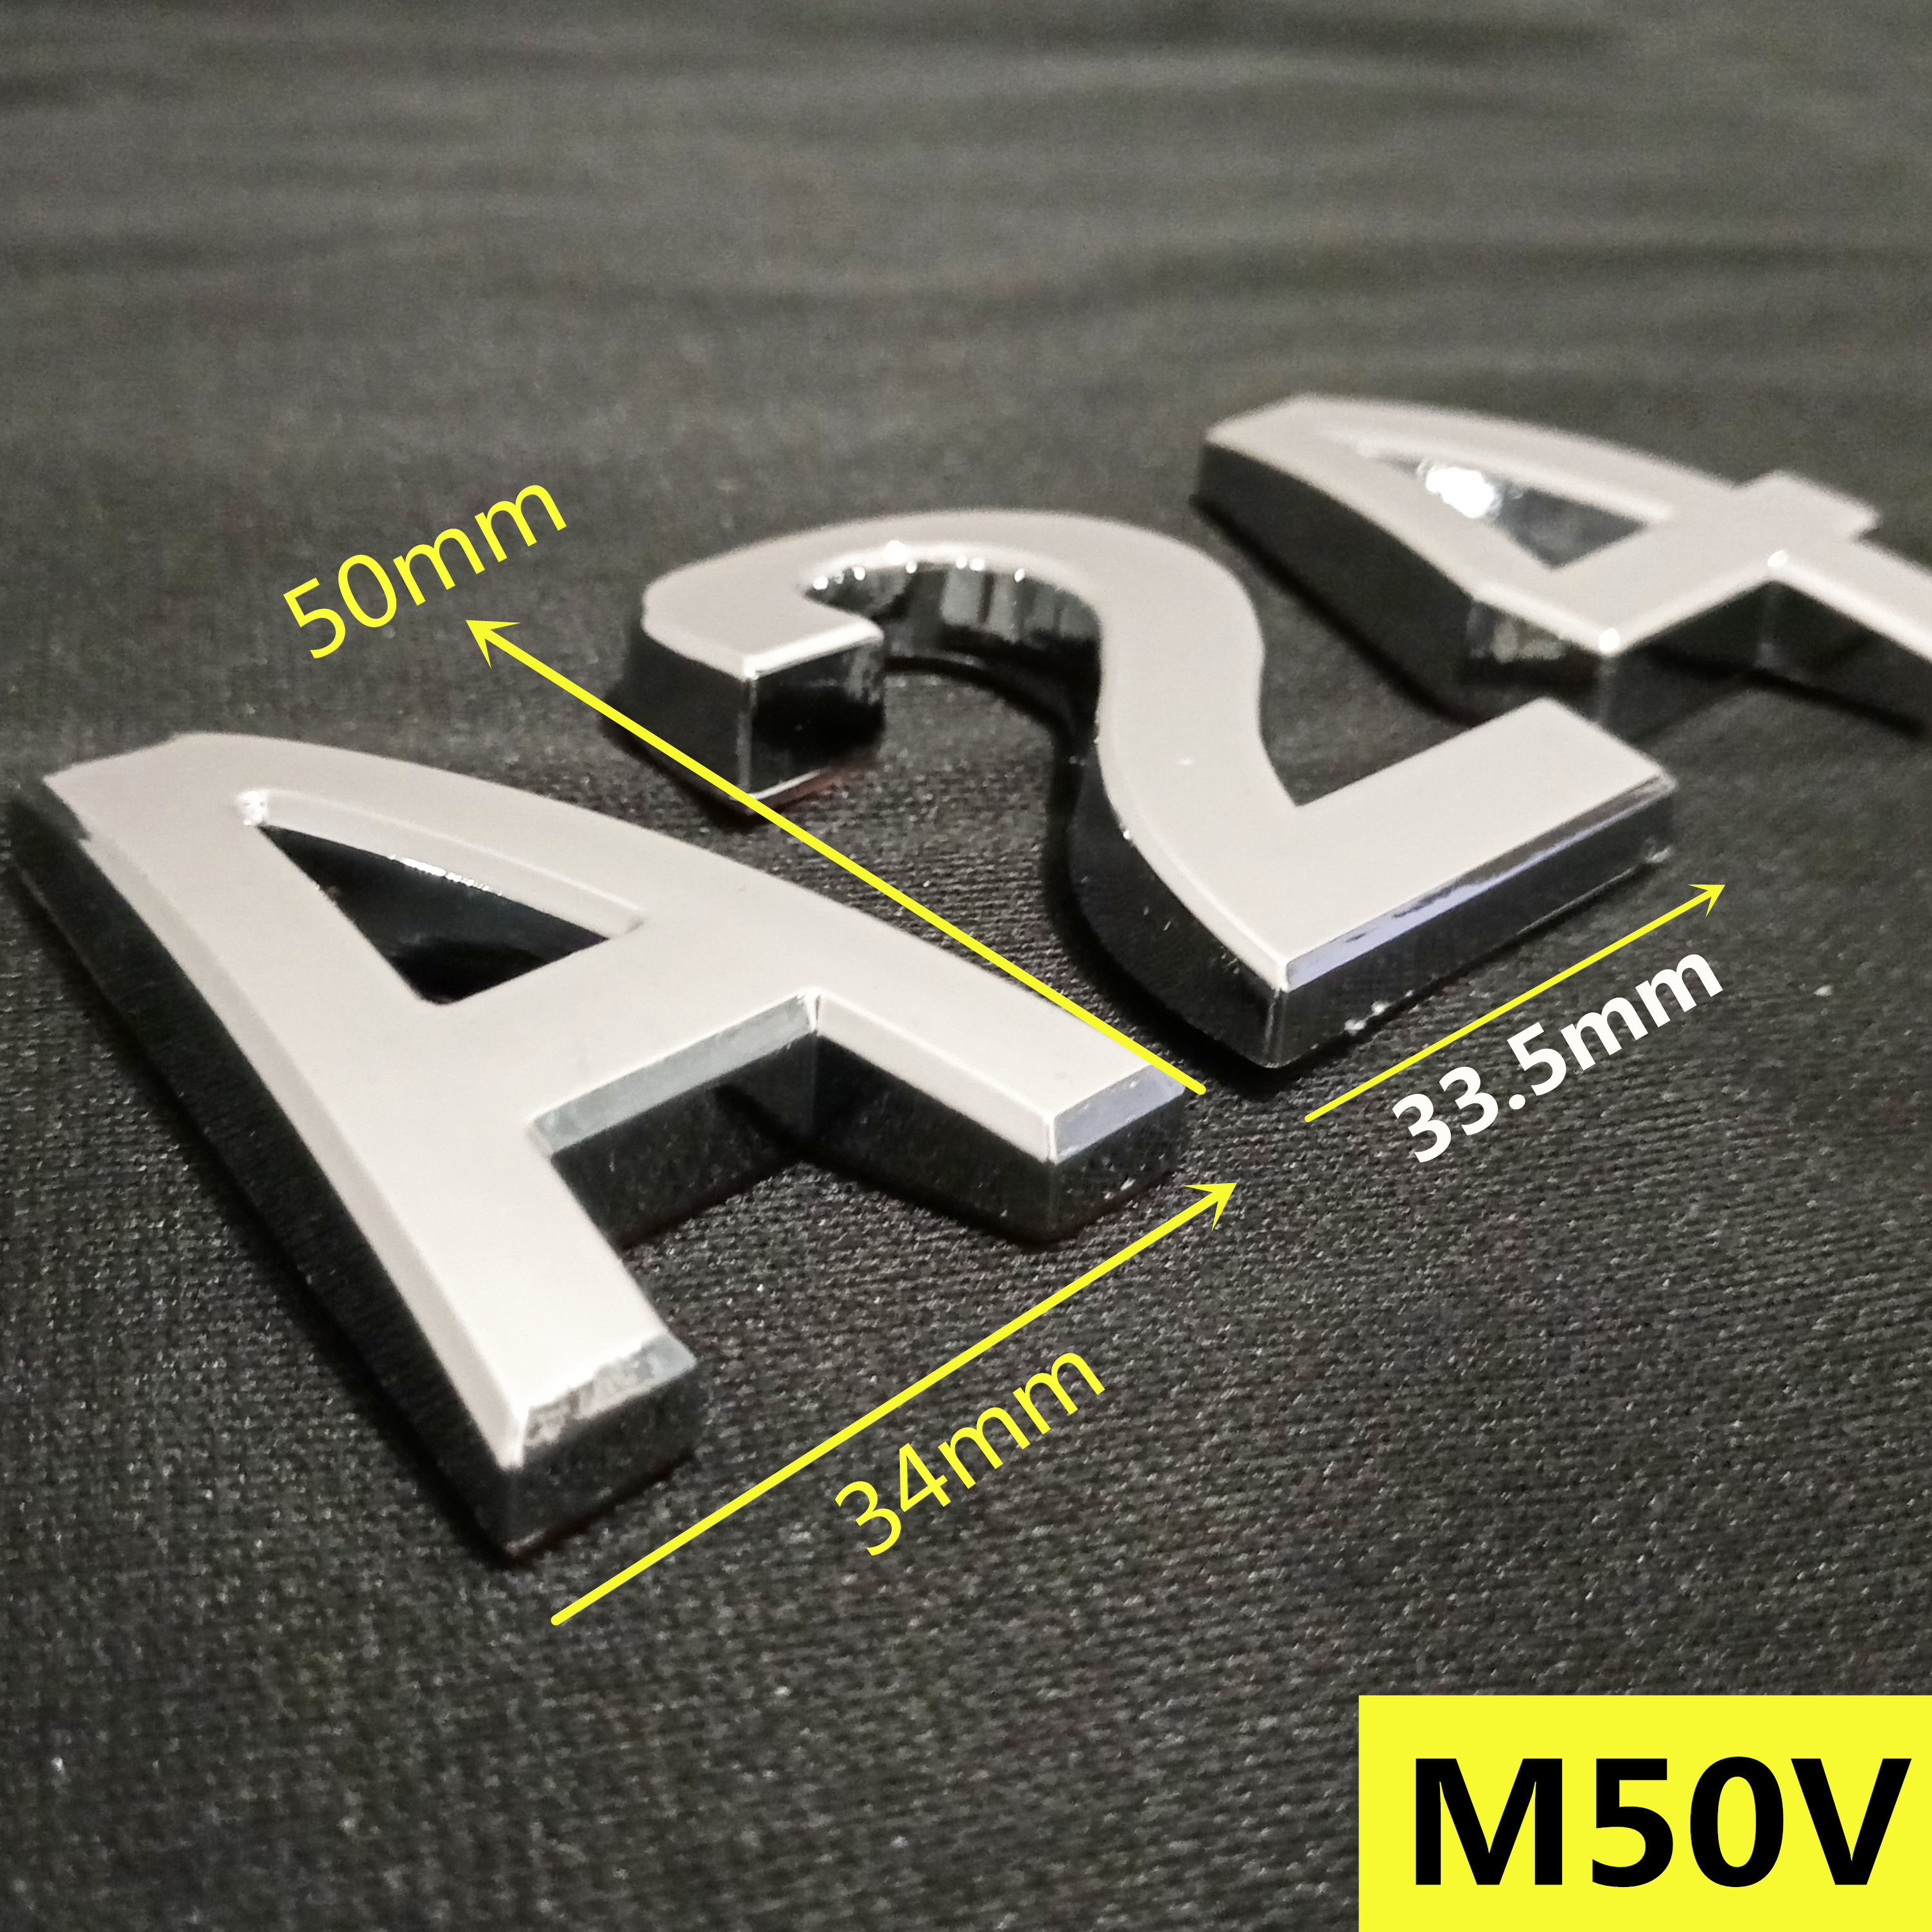 50mm 0123456789 A to Z Modern Silver Plaque Number House Hotel Door Address Digits Sticker Plate Sign ABS plastic